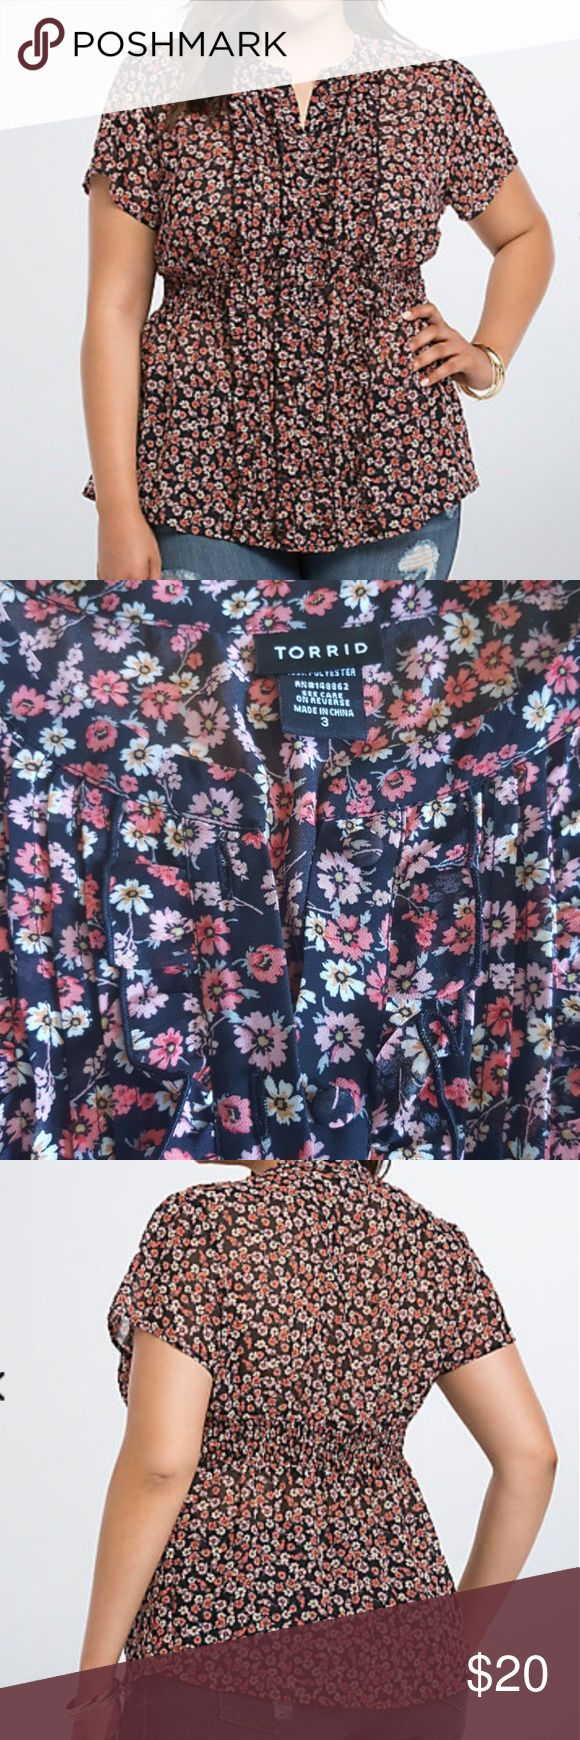 Torrid Floral?Chiffon Ruffle Top Tick, tick, tick, ka-bloom! This black and coral daisy print chiffon blouse has all the feminine features you could want in a romantic top. The ruffled button front paired with a smocked waist will have your figure looking amazing. torrid Tops